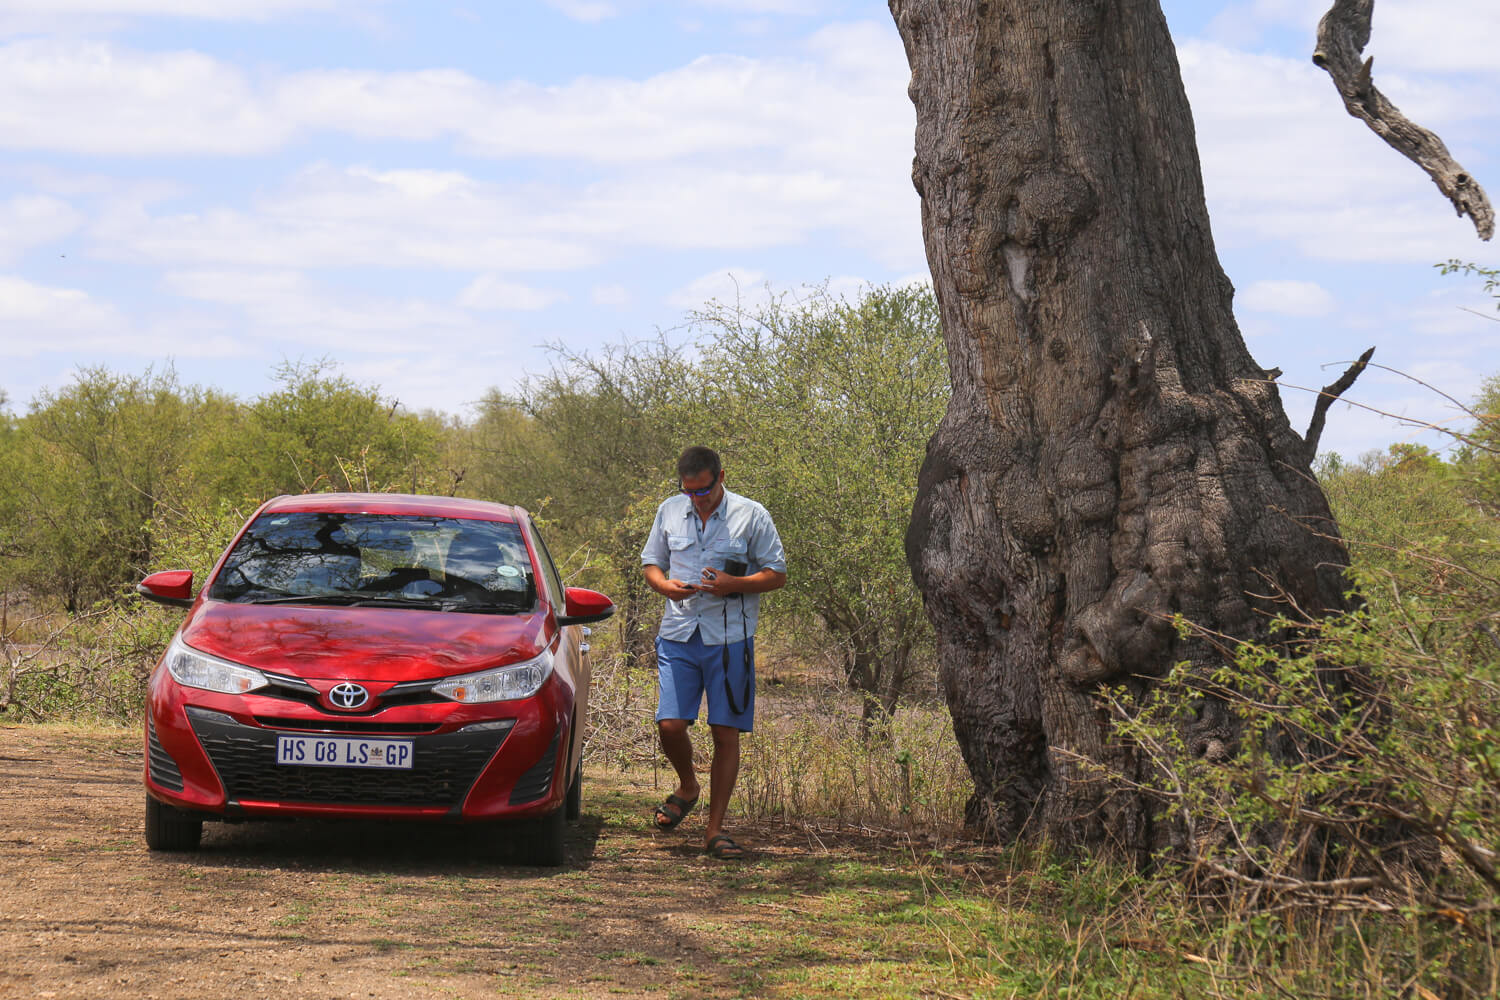 Our trusty rental car, it was small but it got the job done! You don't need a large 4x4 to have a great safari.